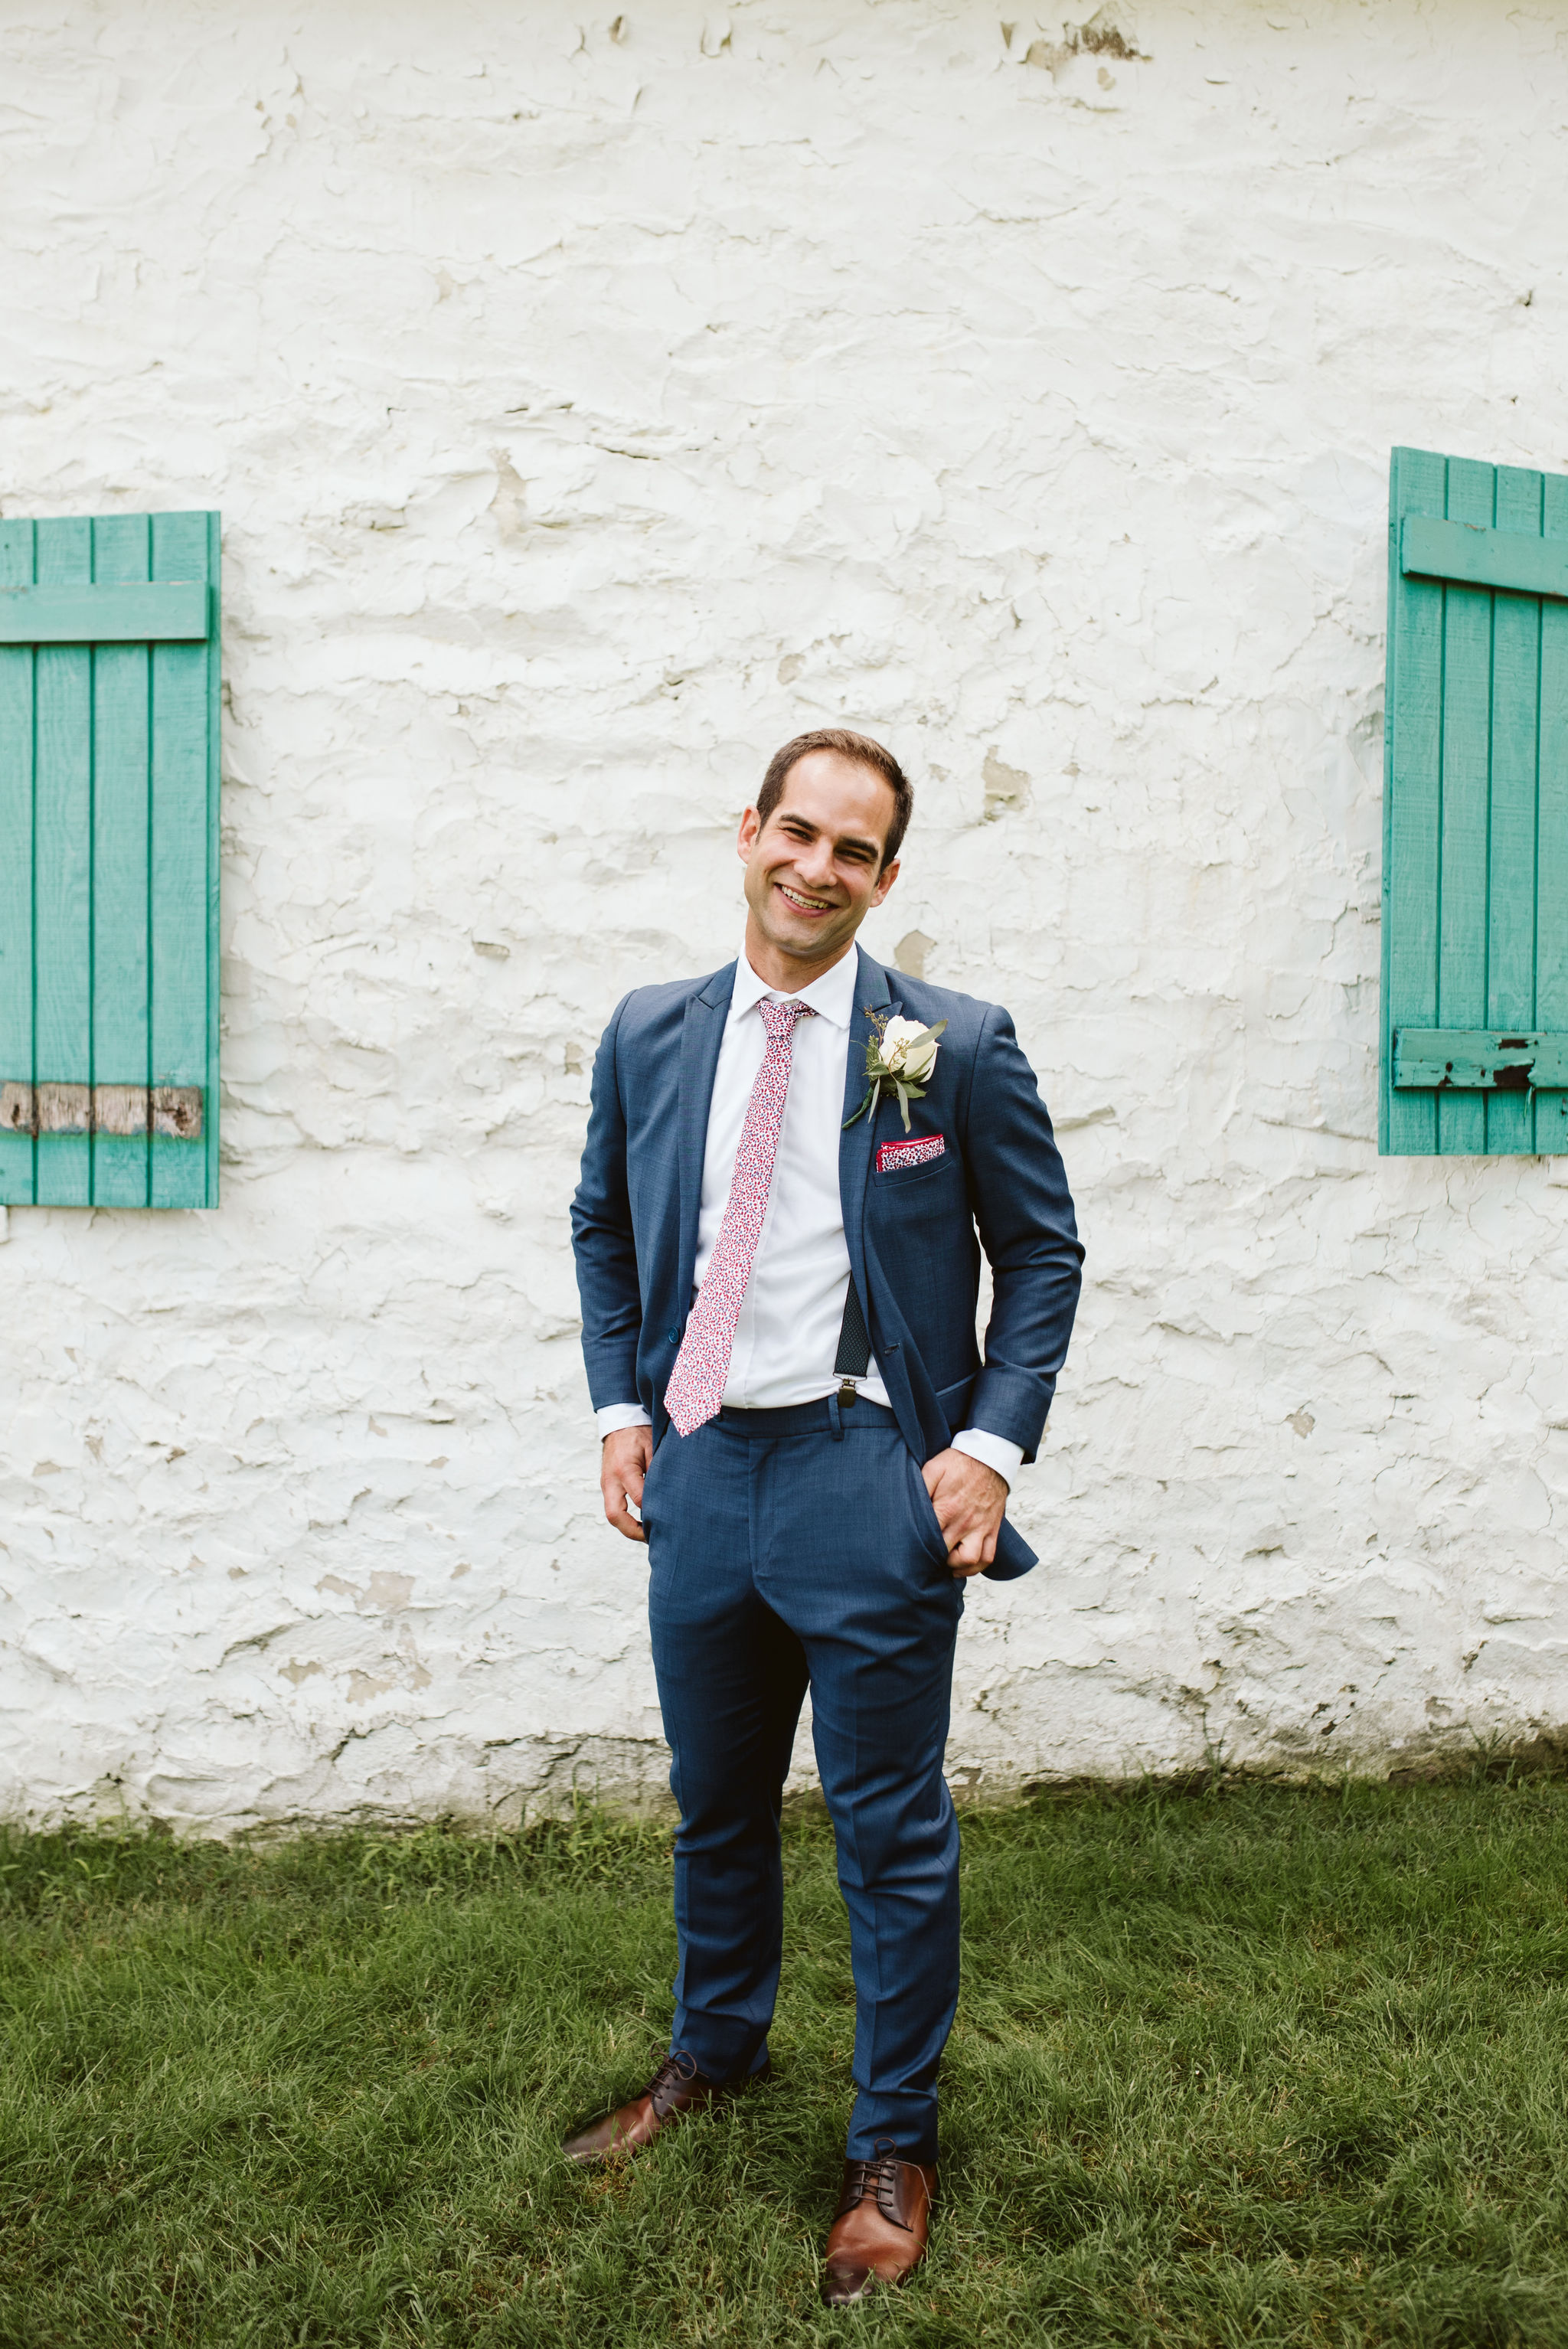 Phoenix Maryland, Baltimore Wedding Photographer, Eagle's Nest Country Club, Classic, Romantic, Portrait Photo of Groom Smiling, Generation Tux Suit, Knotty Tie Details, Pocket Square